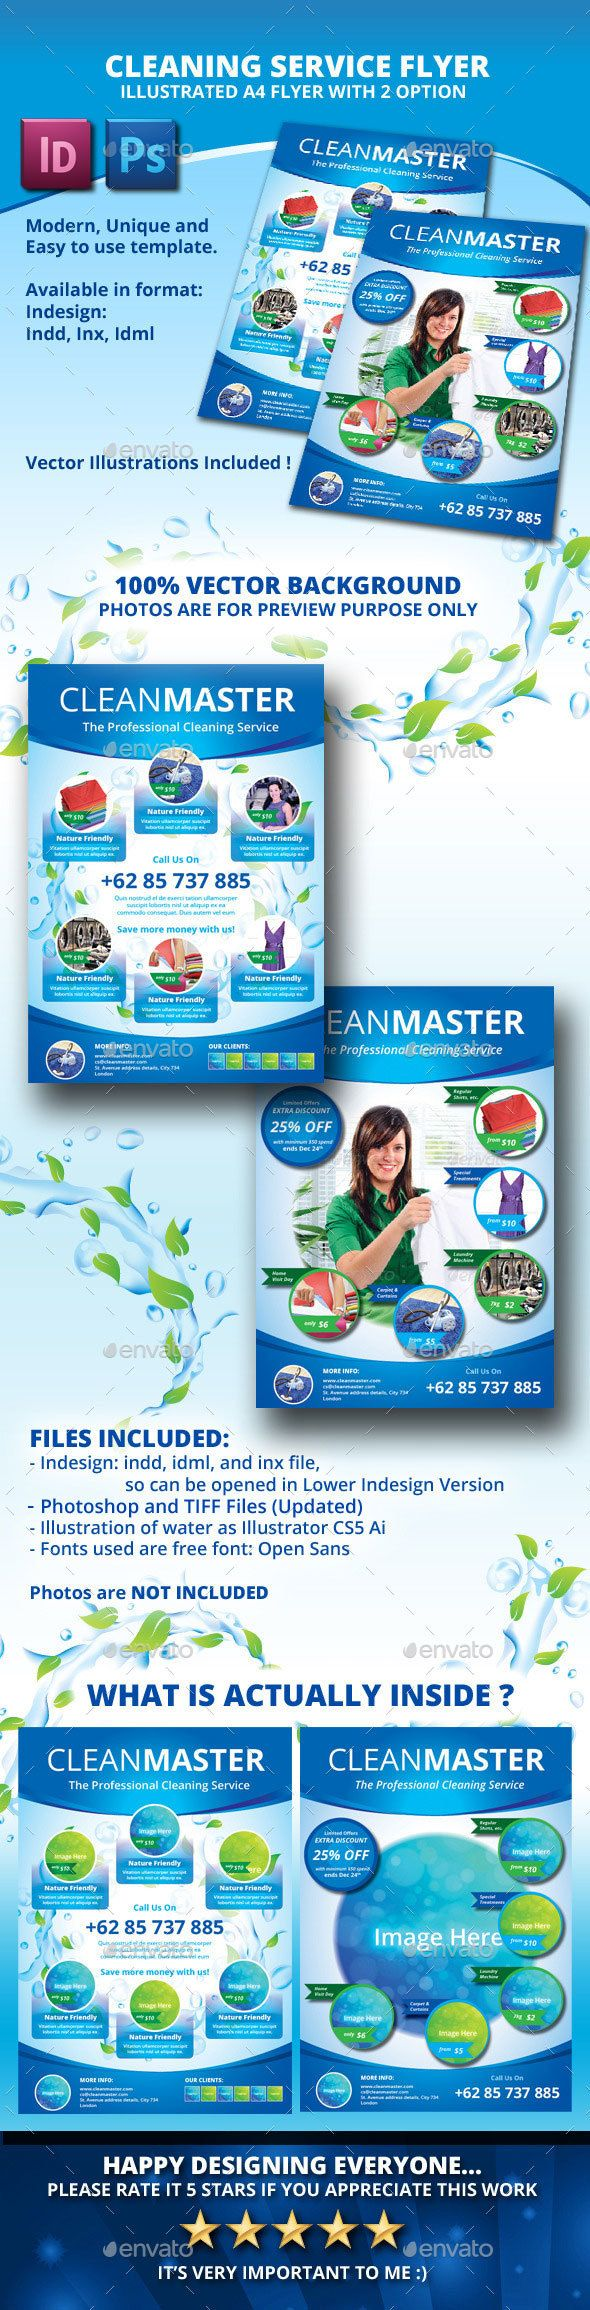 Eco Cleaning Service A4 Flyer With 2 Layout Fonts Logos Icons